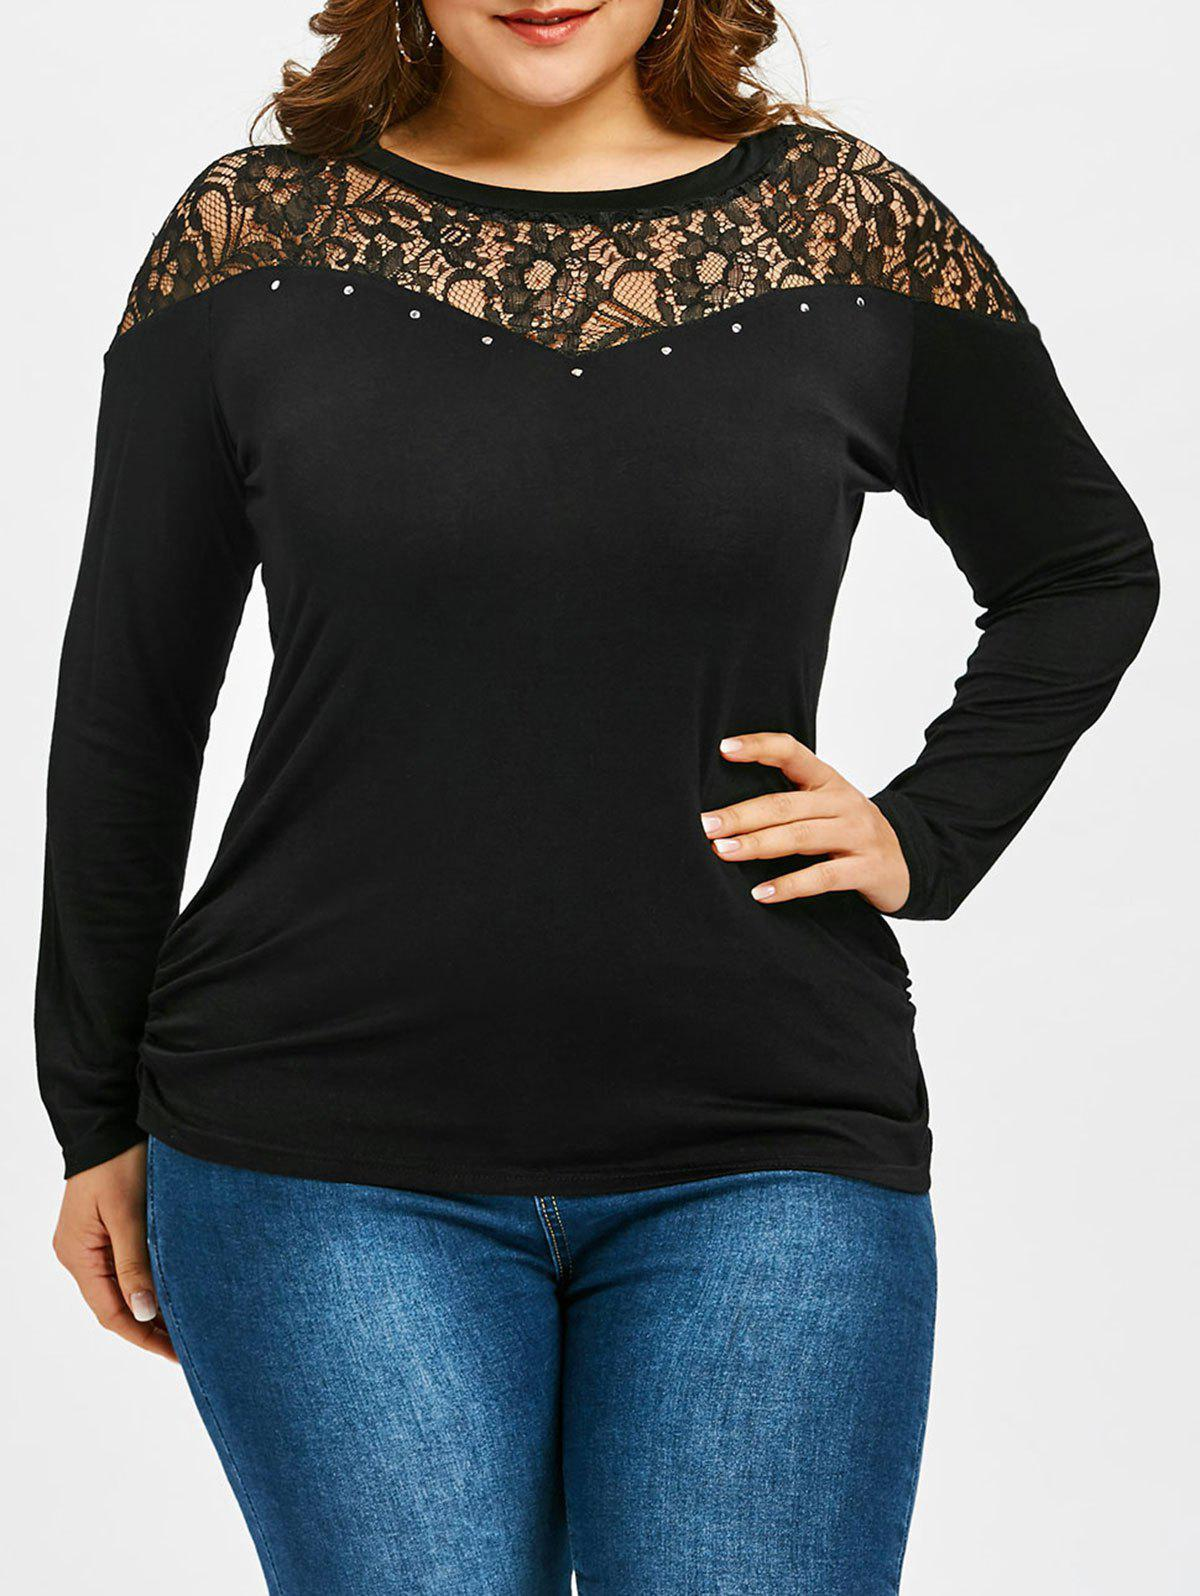 Flower Lace Panel Plus Size Long Sleeve T-shirt redfox футболка flower t 42 4300 желтый